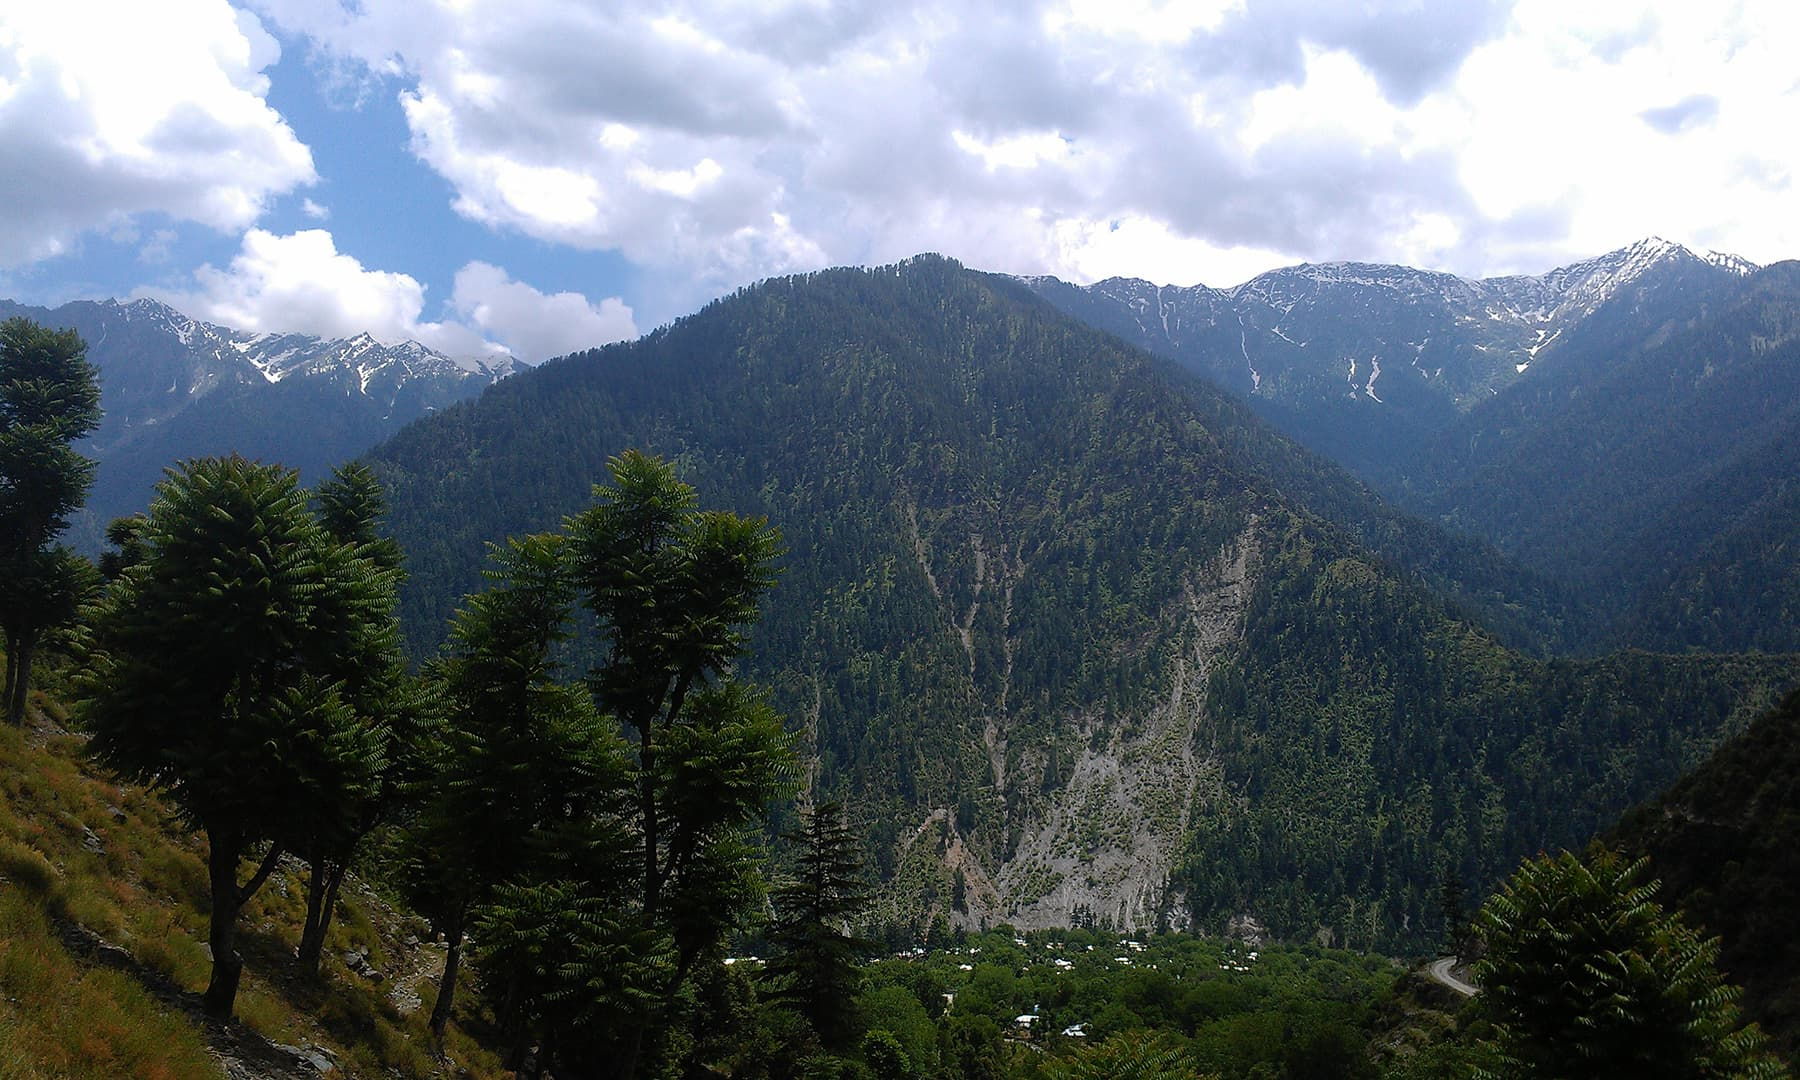 Athmuqam in the valley below.